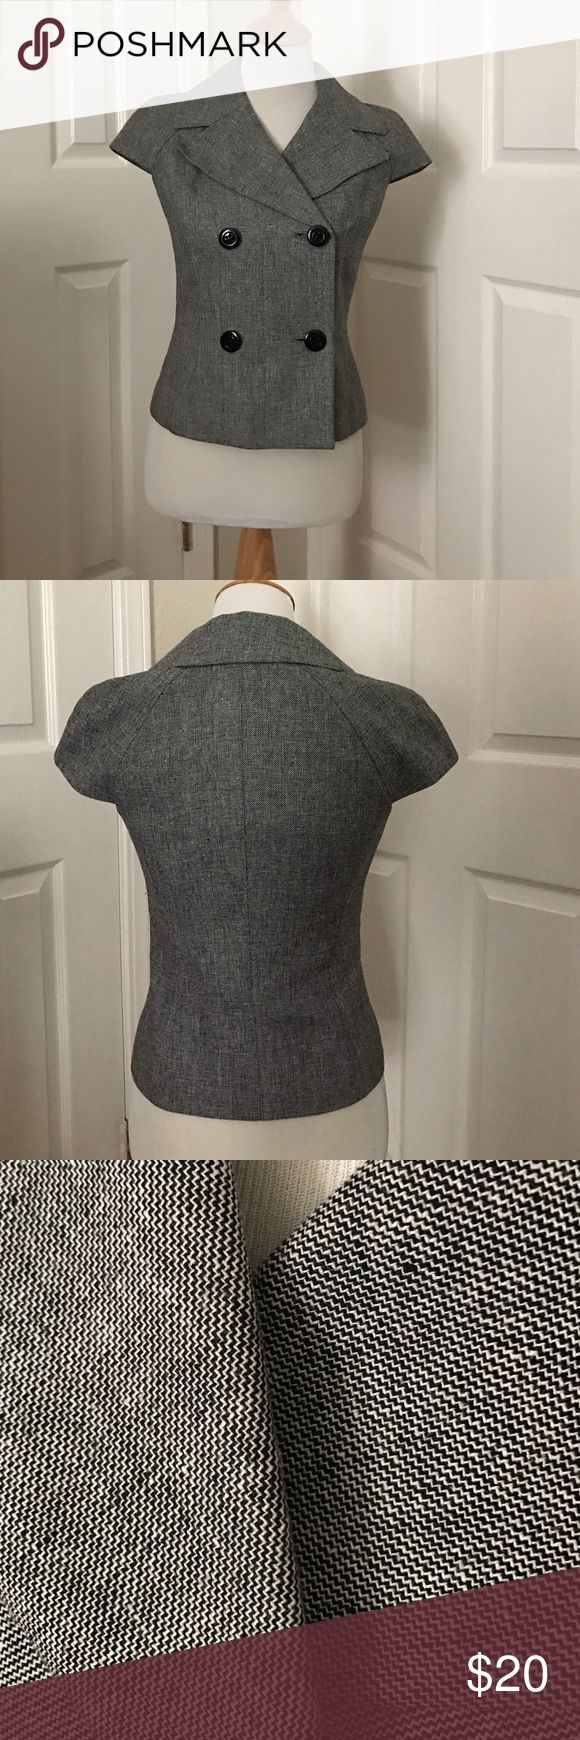 Grey short-sleeved Calvin Klein buttoned top Professional, tailored-looking, sleek, and sharp Calvin Klein top in Gray. 4 black buttons on the front which can be work buttoned or opened for layering a tank/blouse inside. Size 2, true to size. Perfect for work or event, easily dressed up when matched with a pencil skirt or black slacks. Exterior is made up of Linen and Rylan and the interior lining is polyester. Super cute is prestige condition, has only been worn 2-3 times and has only ever…